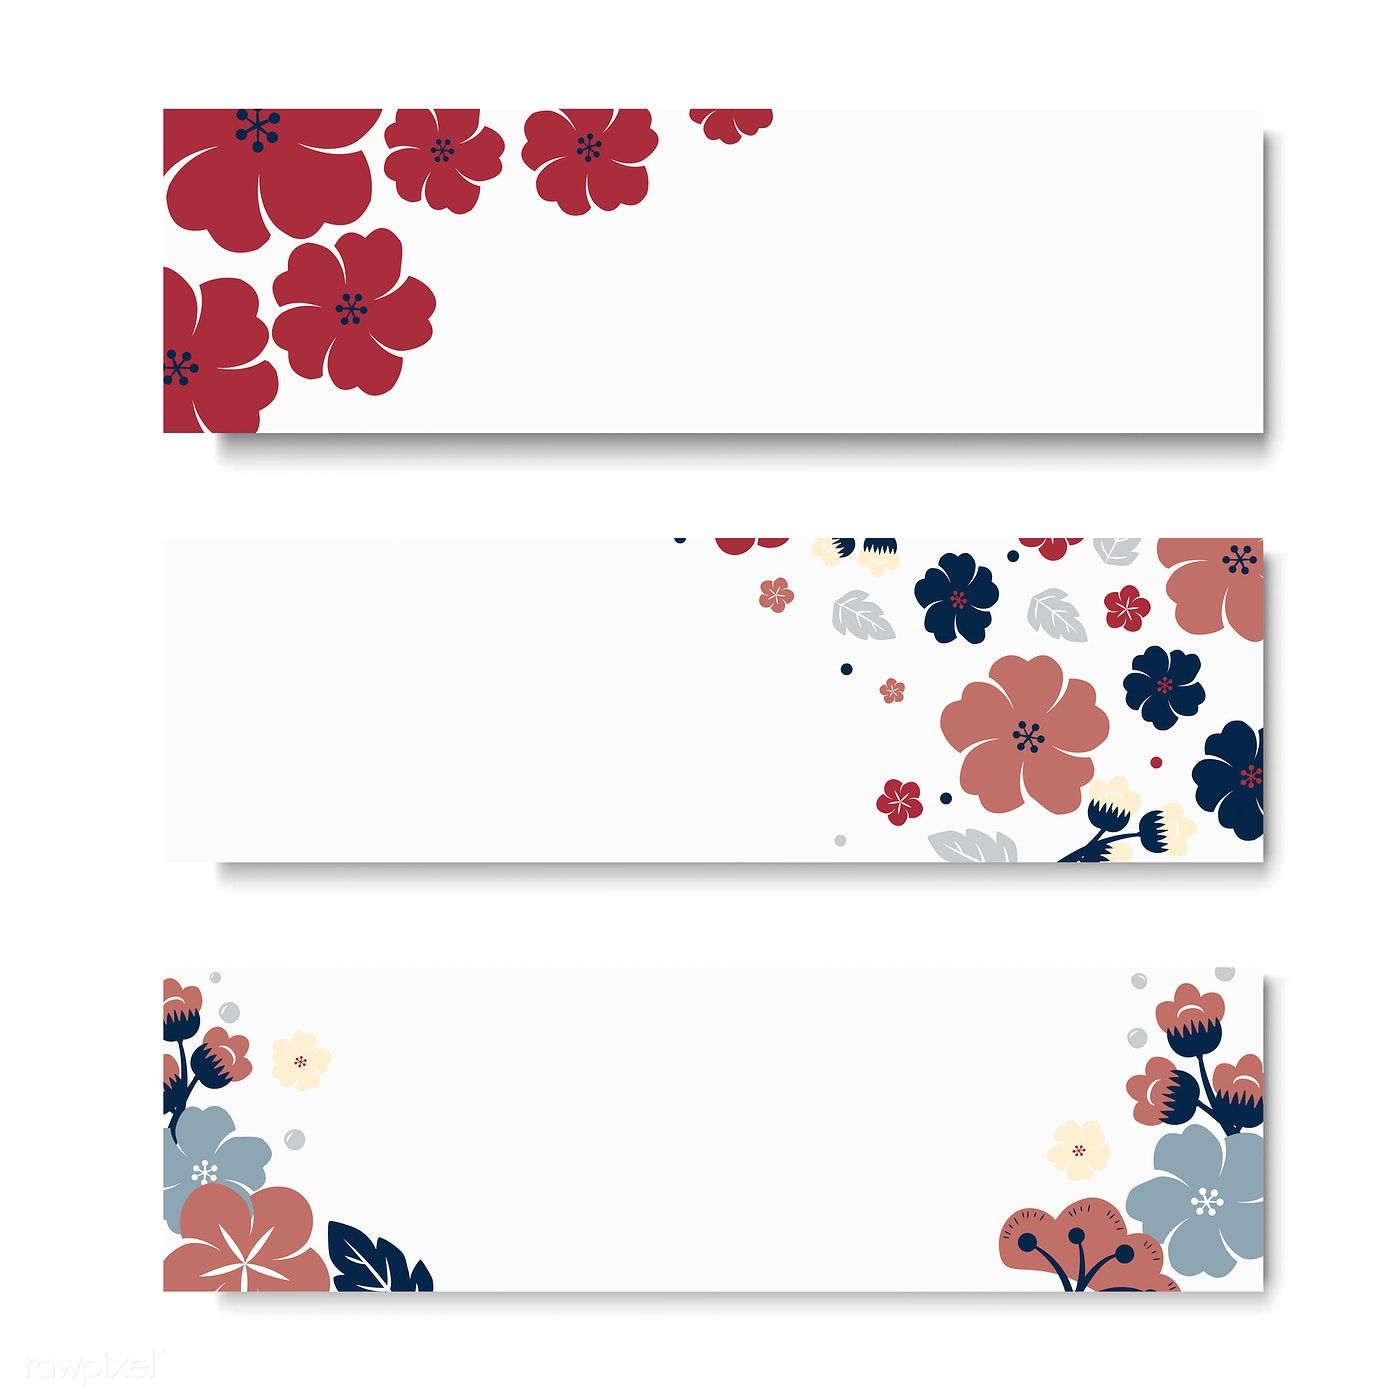 Flowers Border Rectangle Card Template Vector Free Image By Rawpixel Com Kappy Kappy Vector Free Vintage Flowers Wallpaper Card Template